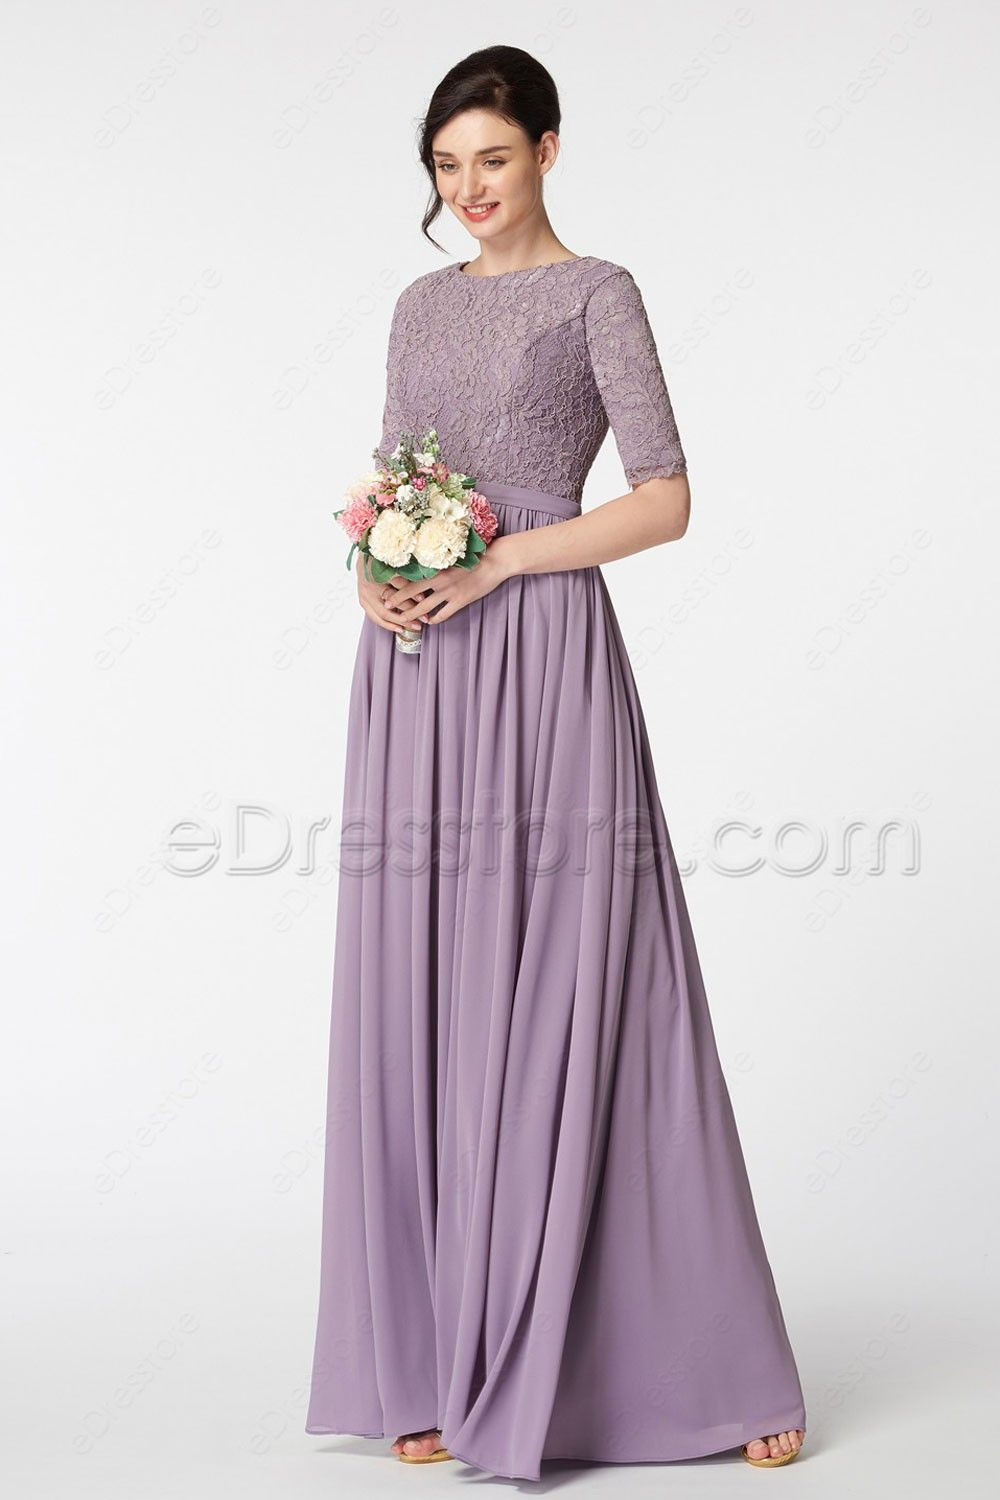 Wisteria purple modest bridesmaid dress with elbow sleeves wisteria purple modest bridesmaid dress with elbow sleeves ombrellifo Gallery